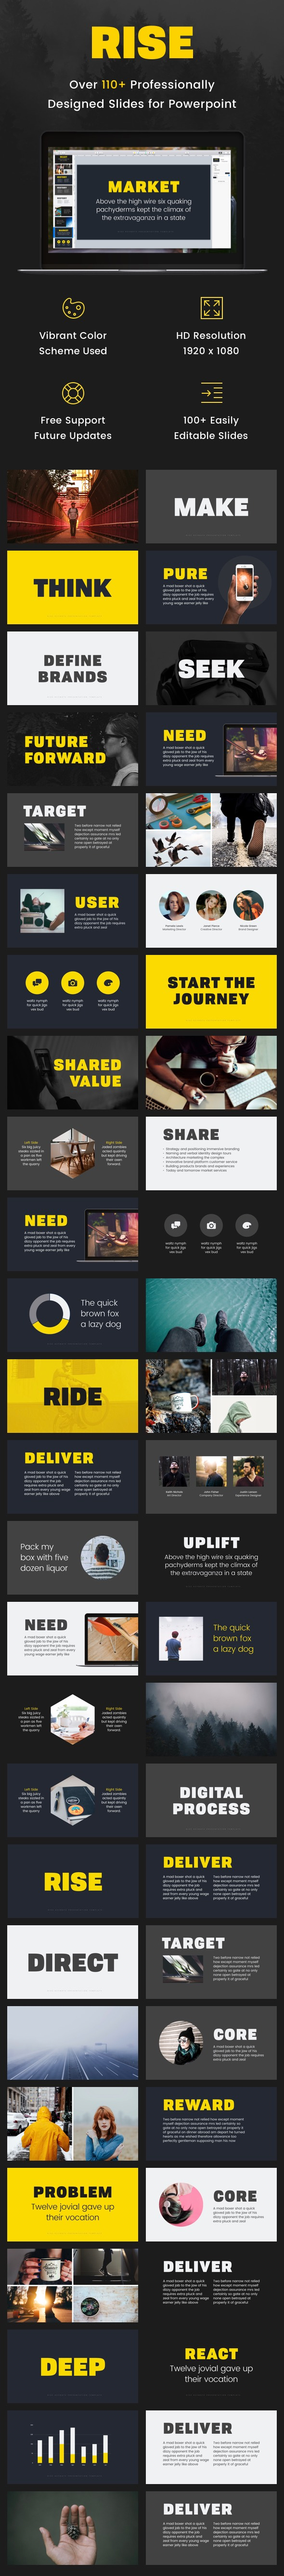 Rise - Powerpoint Presentation Template - PowerPoint Templates Presentation Templates